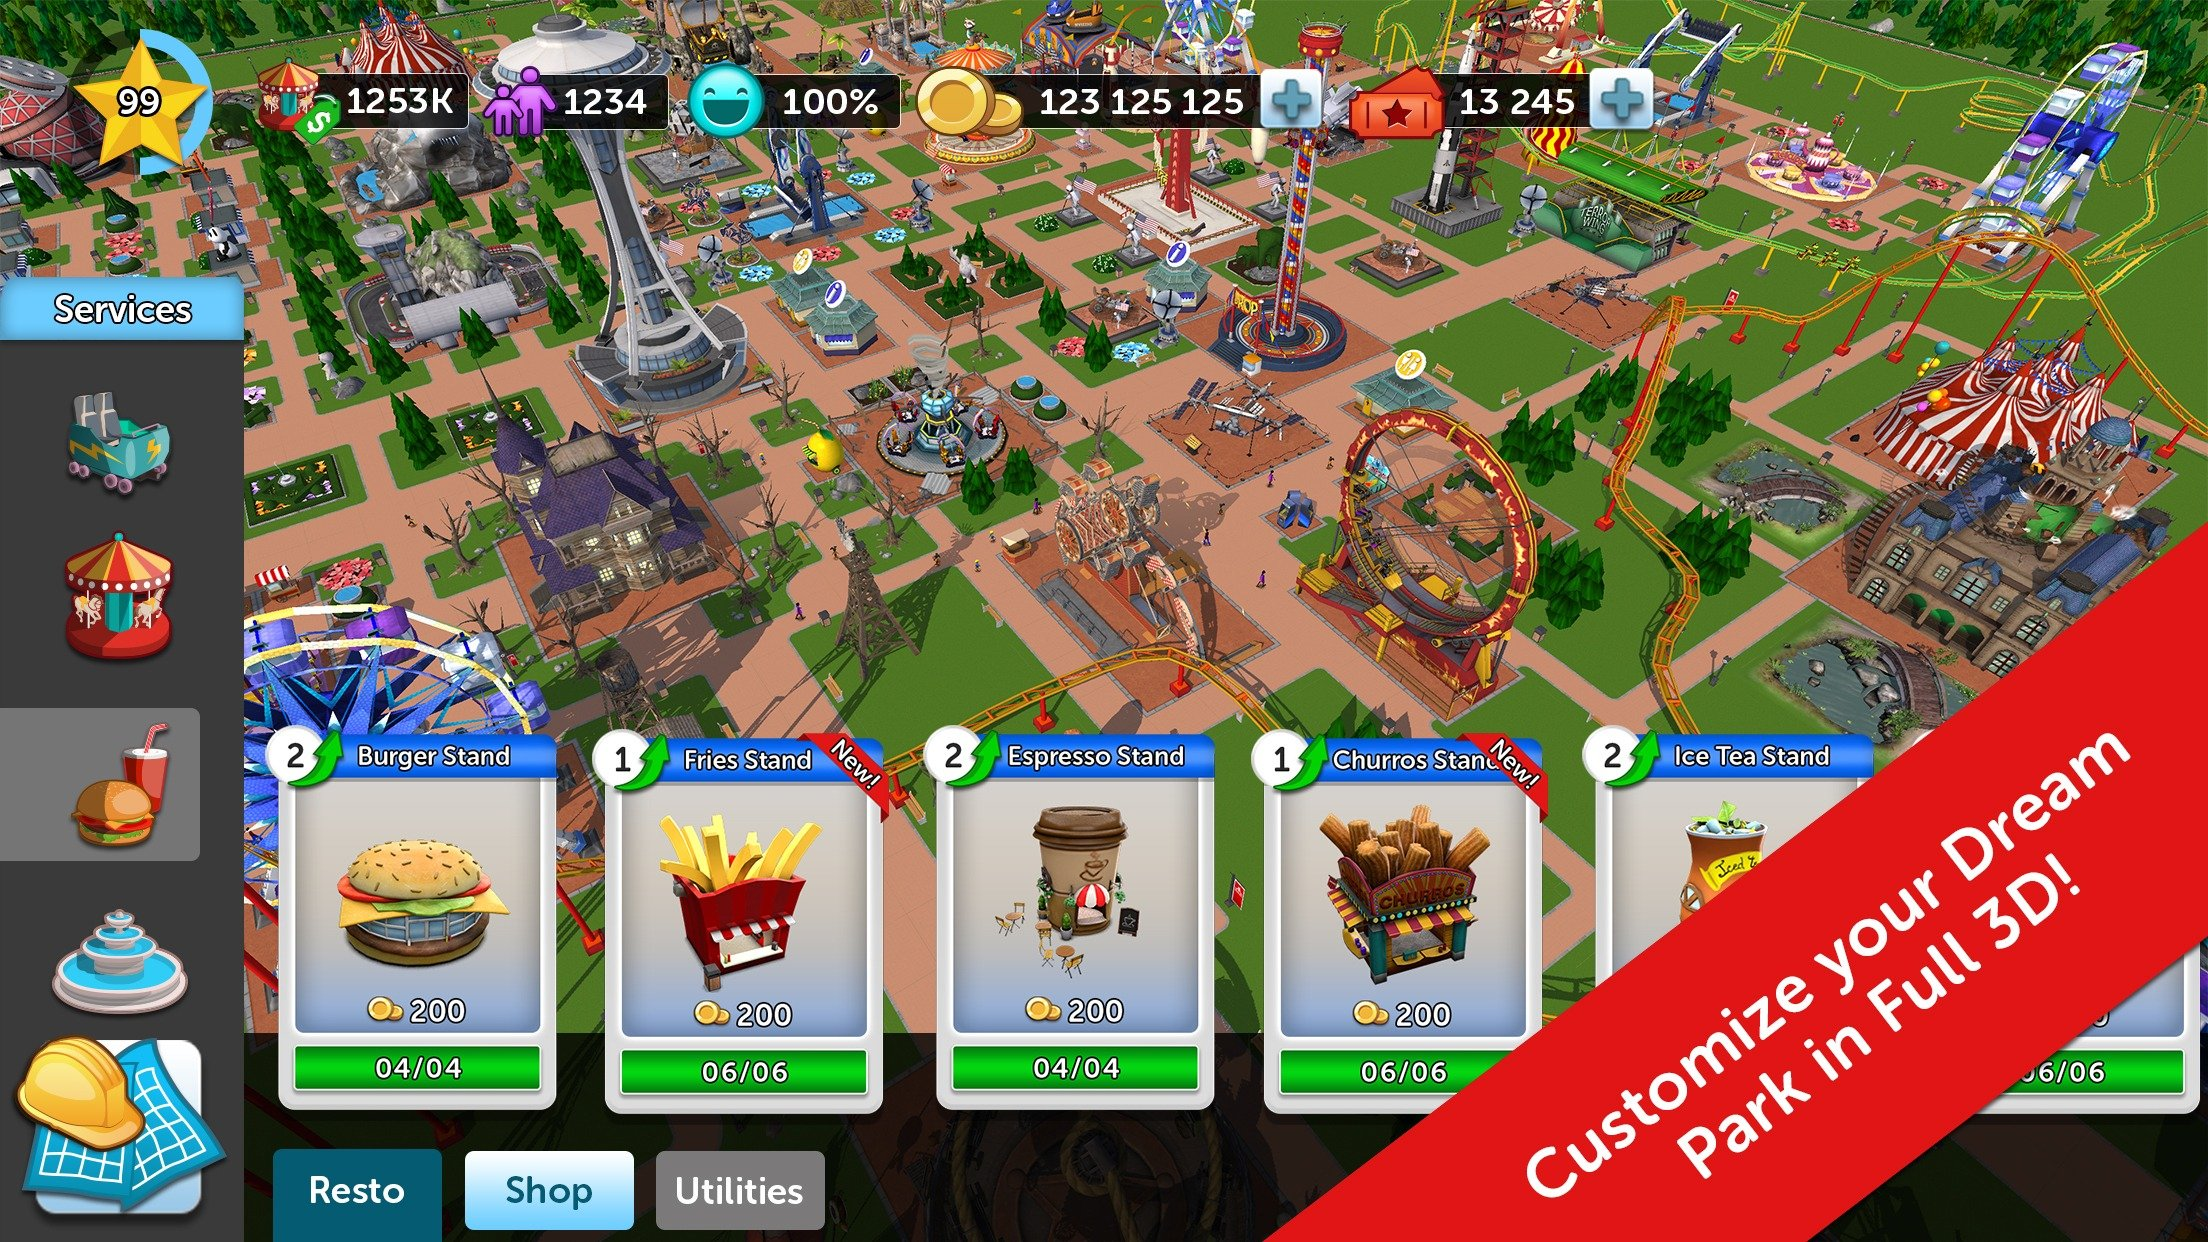 Atari Soft Launches 'RollerCoaster Tycoon Touch' in New Zealand